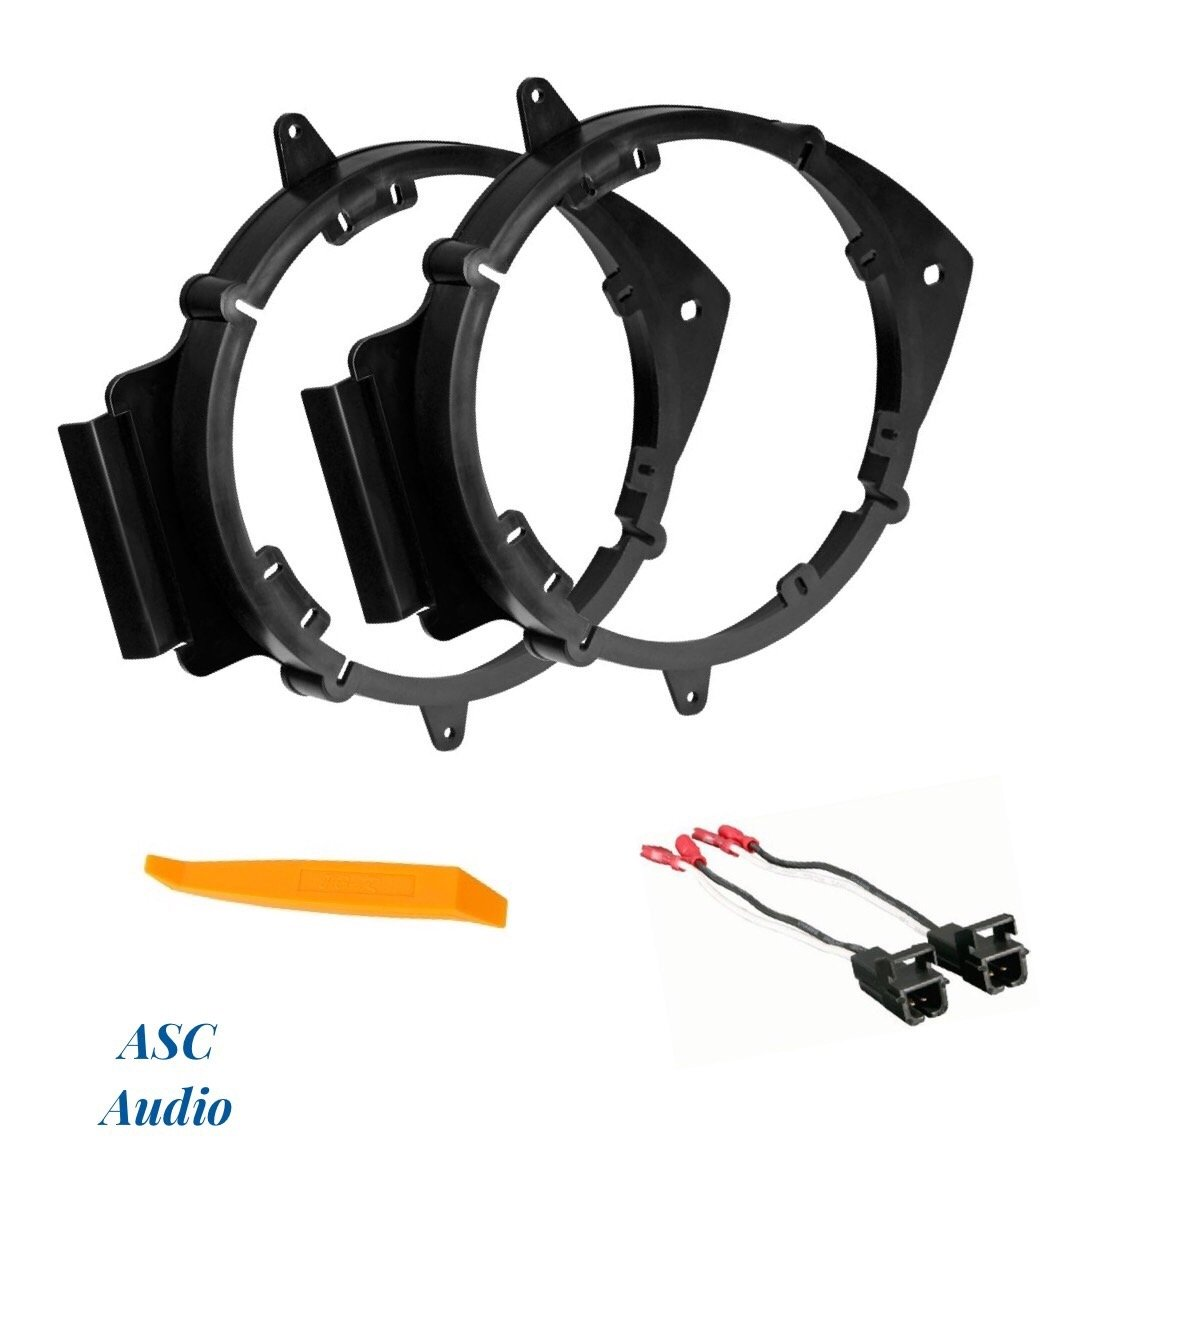 ASC 6+-Inch 6'' 6.5'' 6.75'' Car Speaker Install Adapter Mount Bracket Plates and Speaker Wire Connectors for Select GM Chevrolet GMC Pontiac Saturn Vehicles - Compatible Vehicles Listed Below